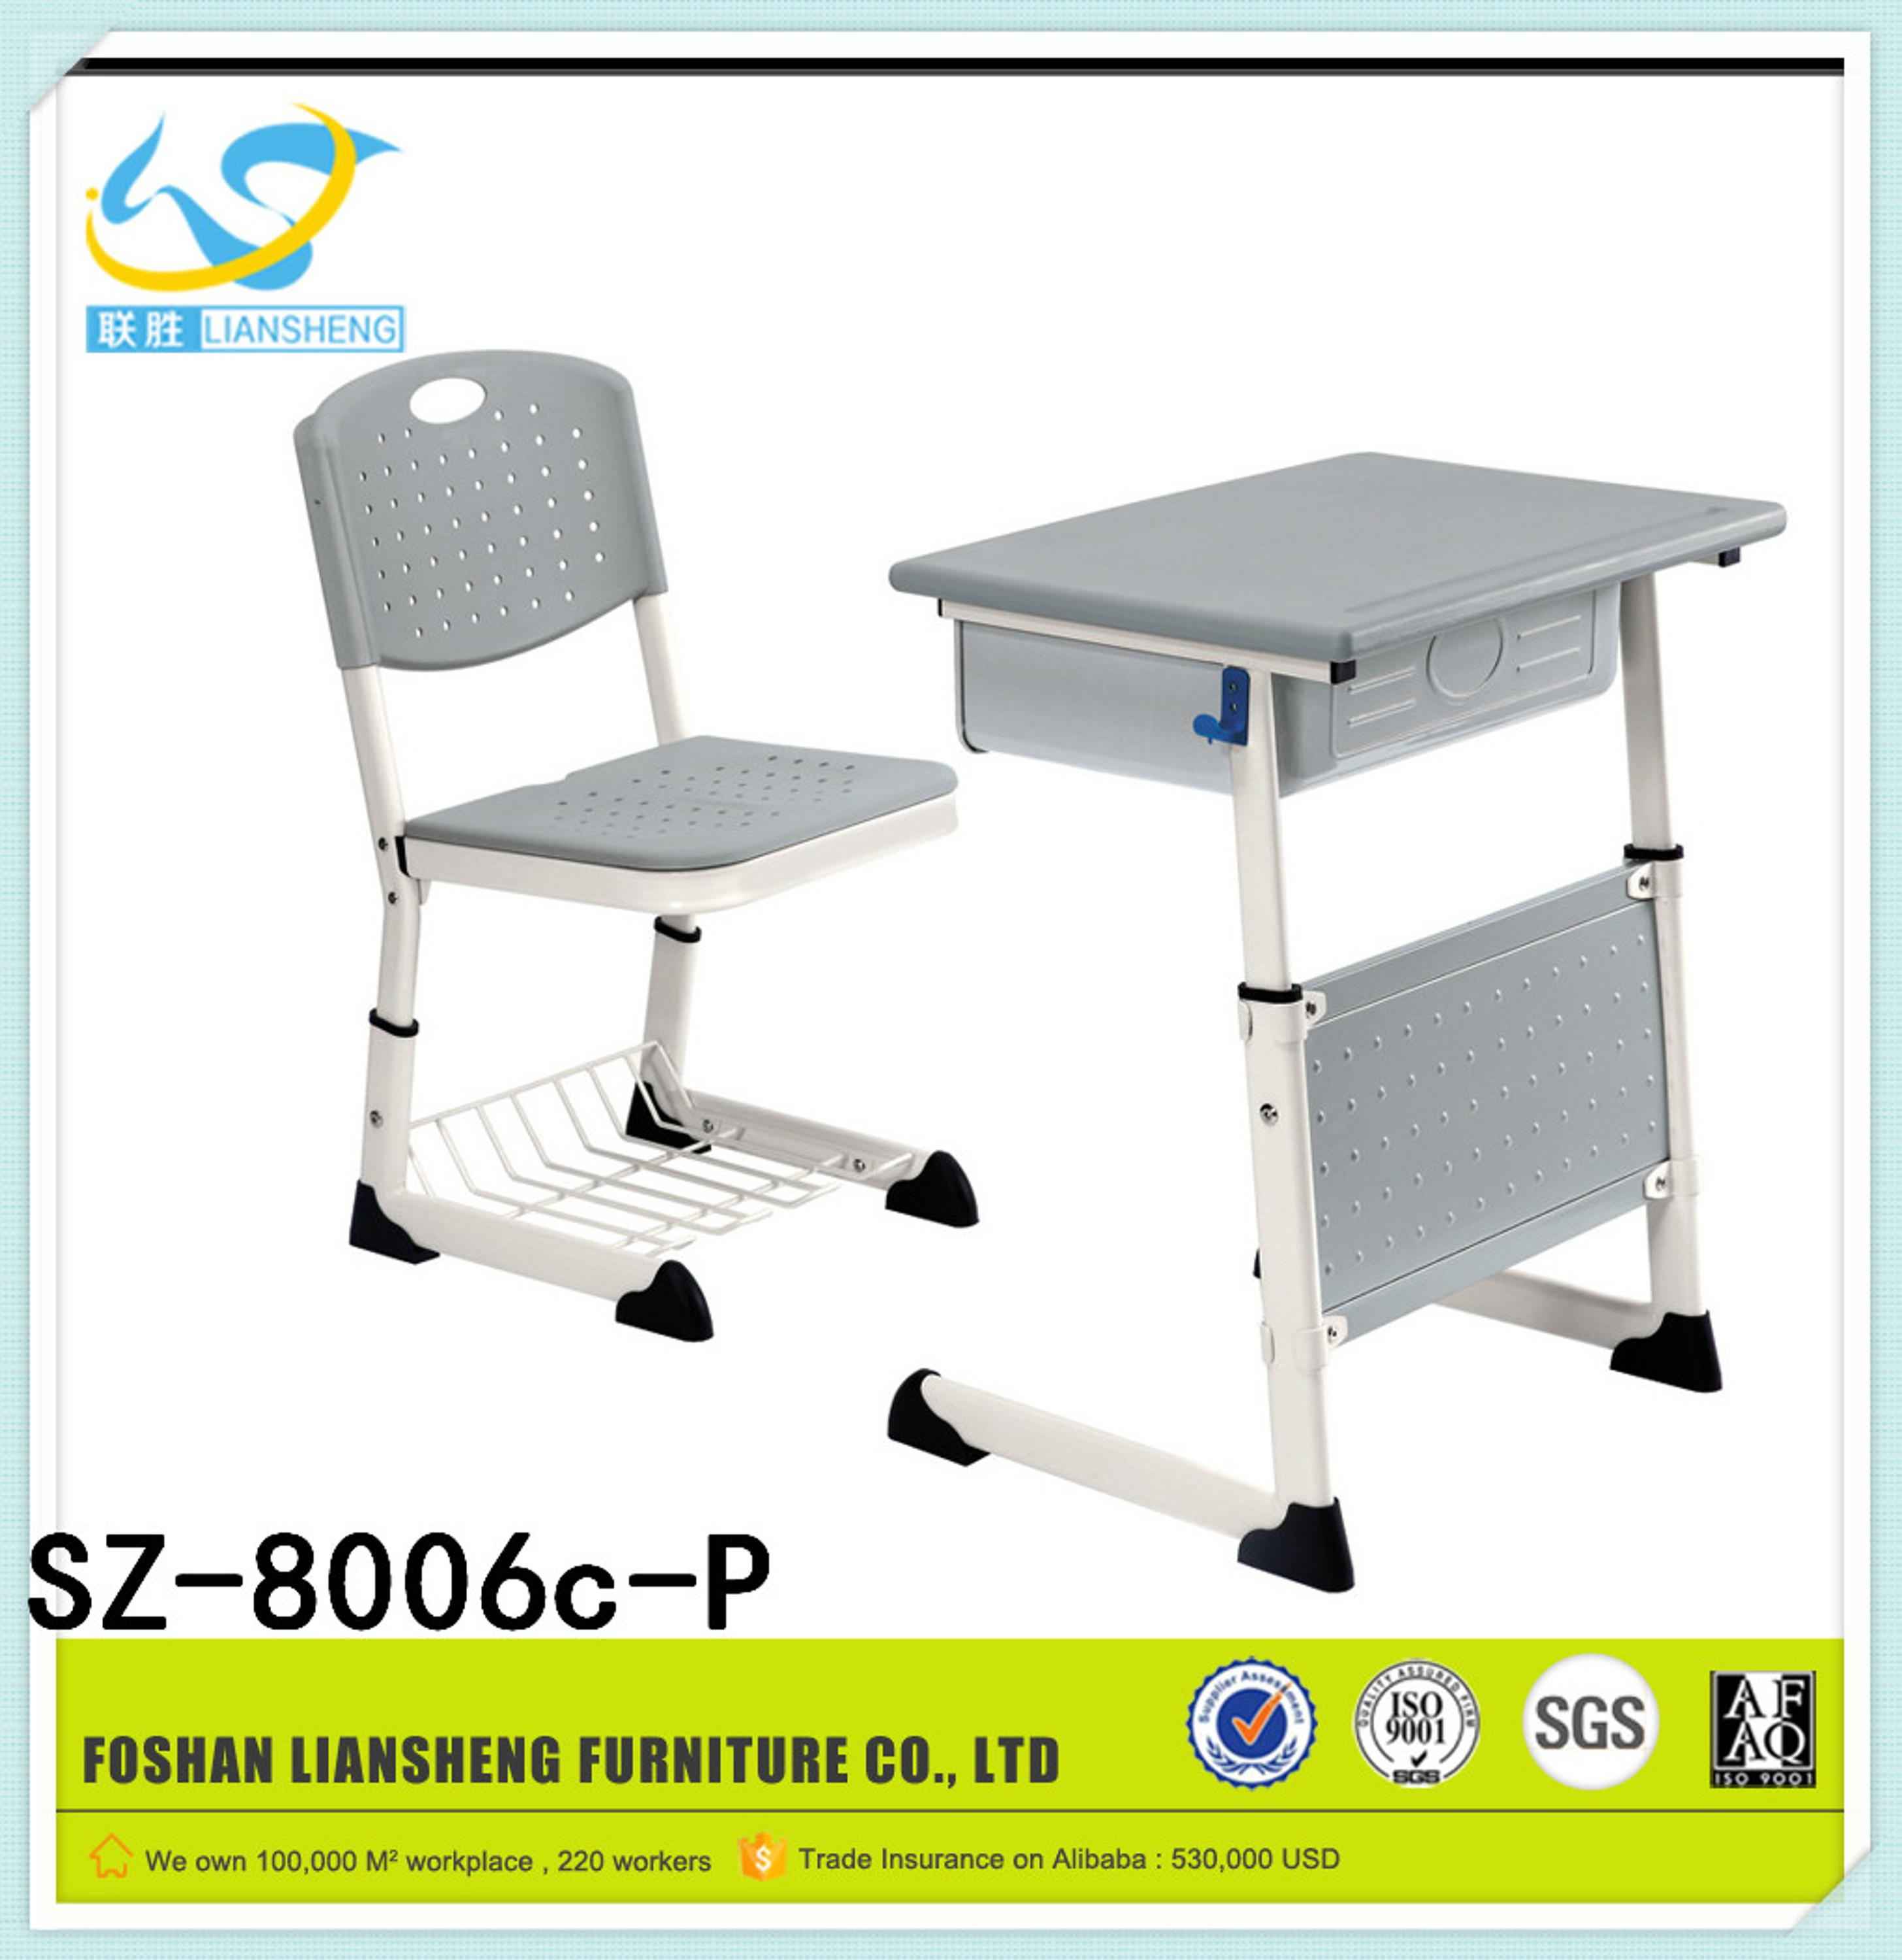 China Children Study Table China Children Study Table